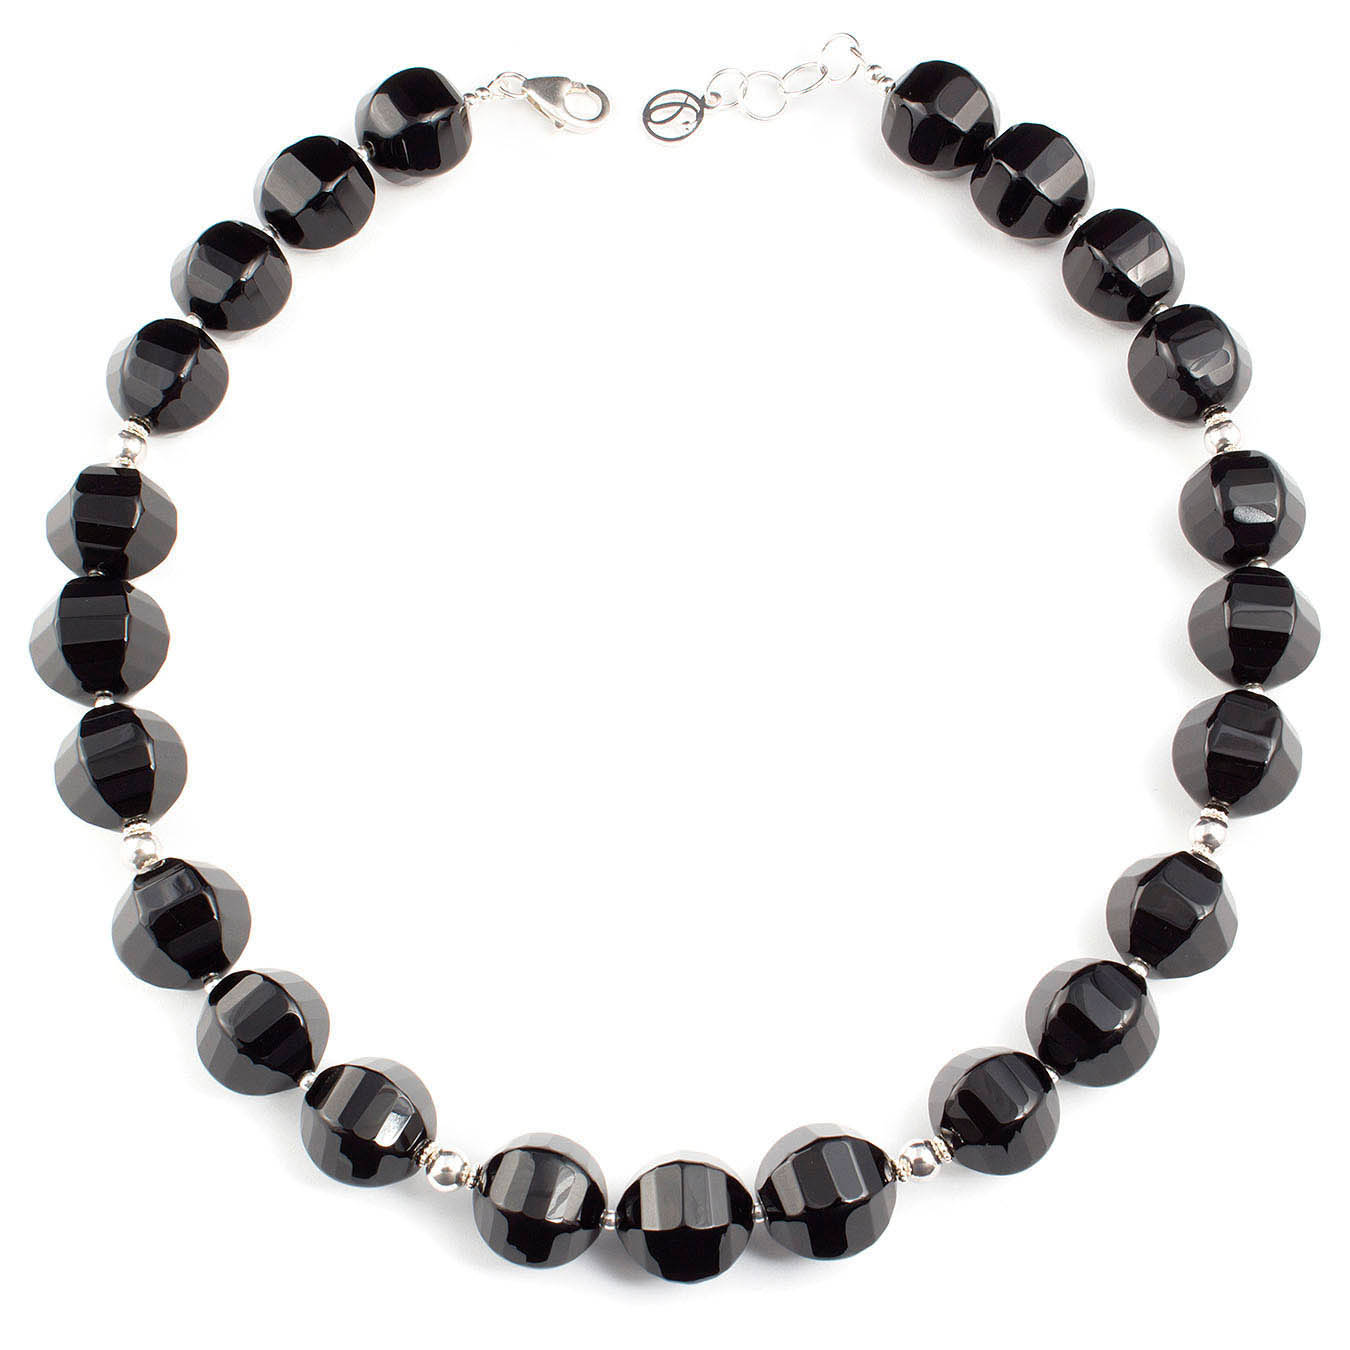 Beaded jewelry necklace made with semi-precious black agate and 925